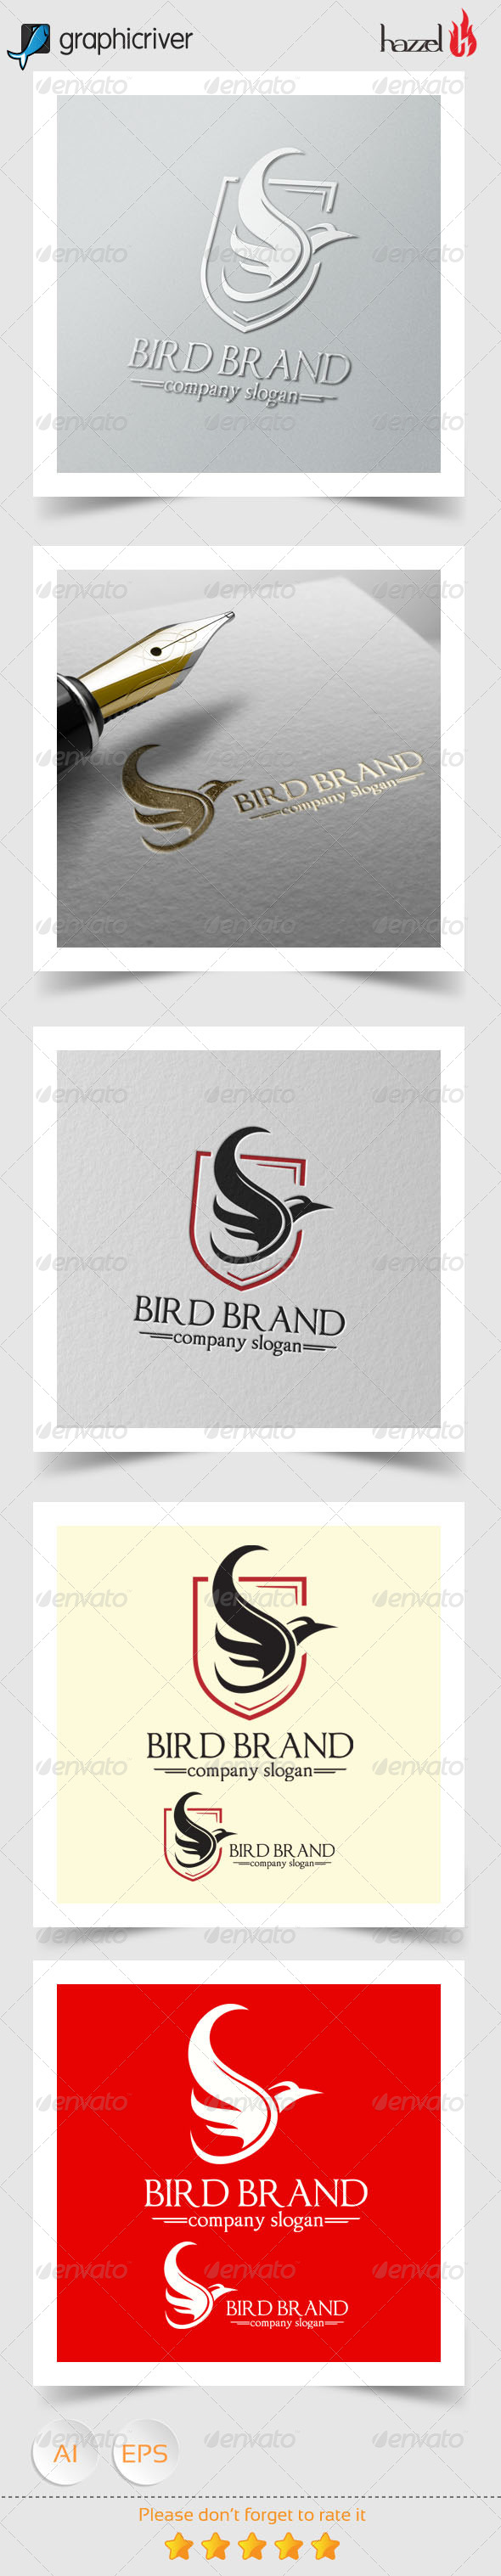 GraphicRiver Bird Brand Logo 8182590